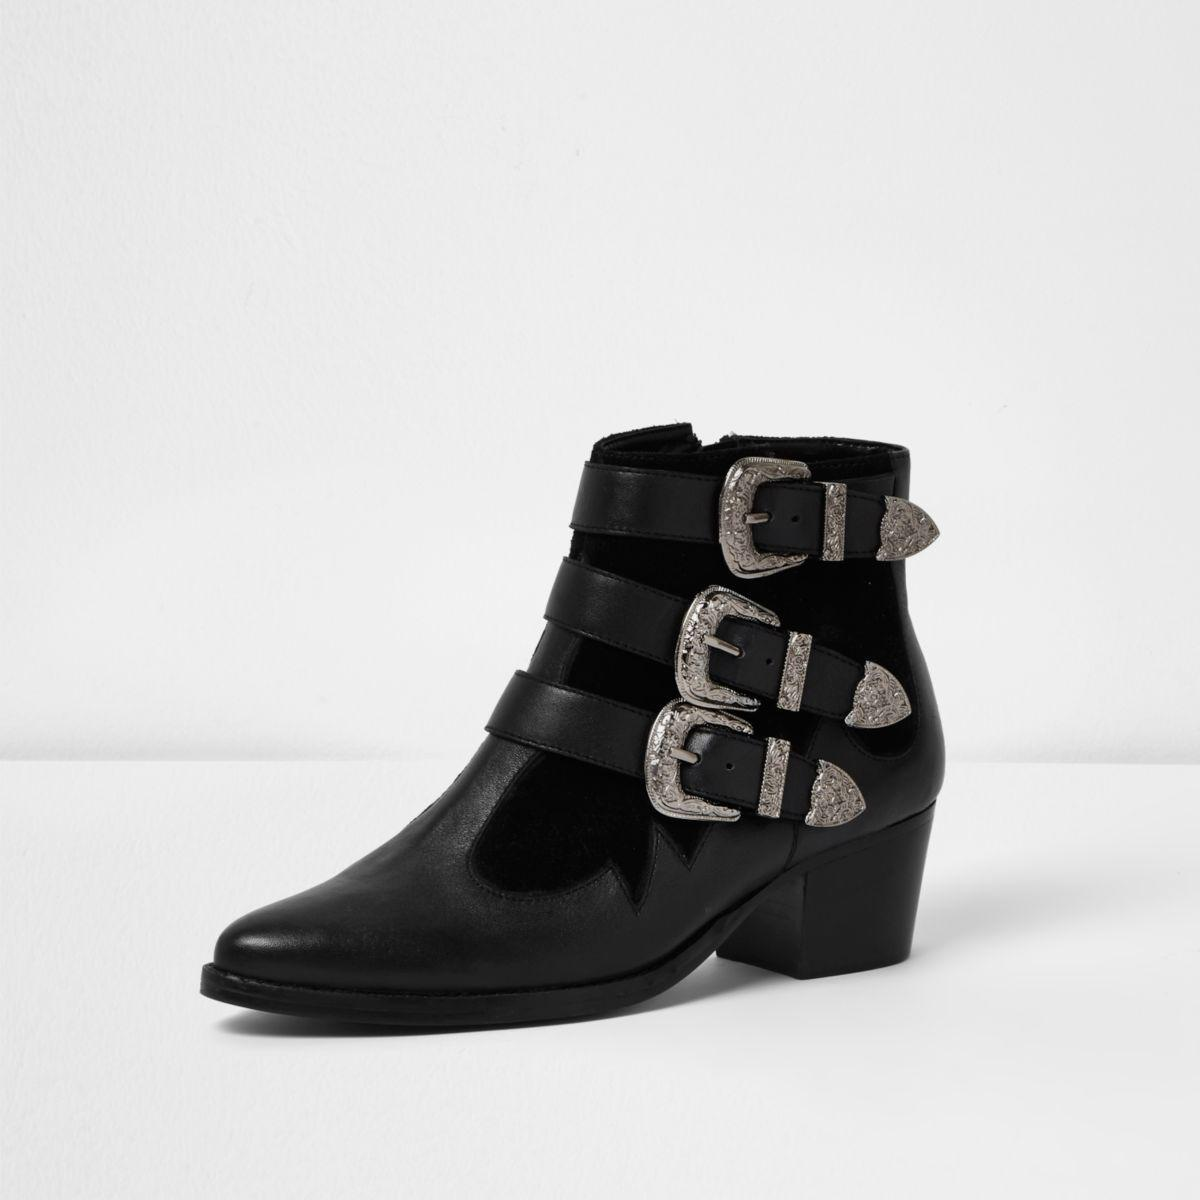 Black Strap Ankle Boots River Island